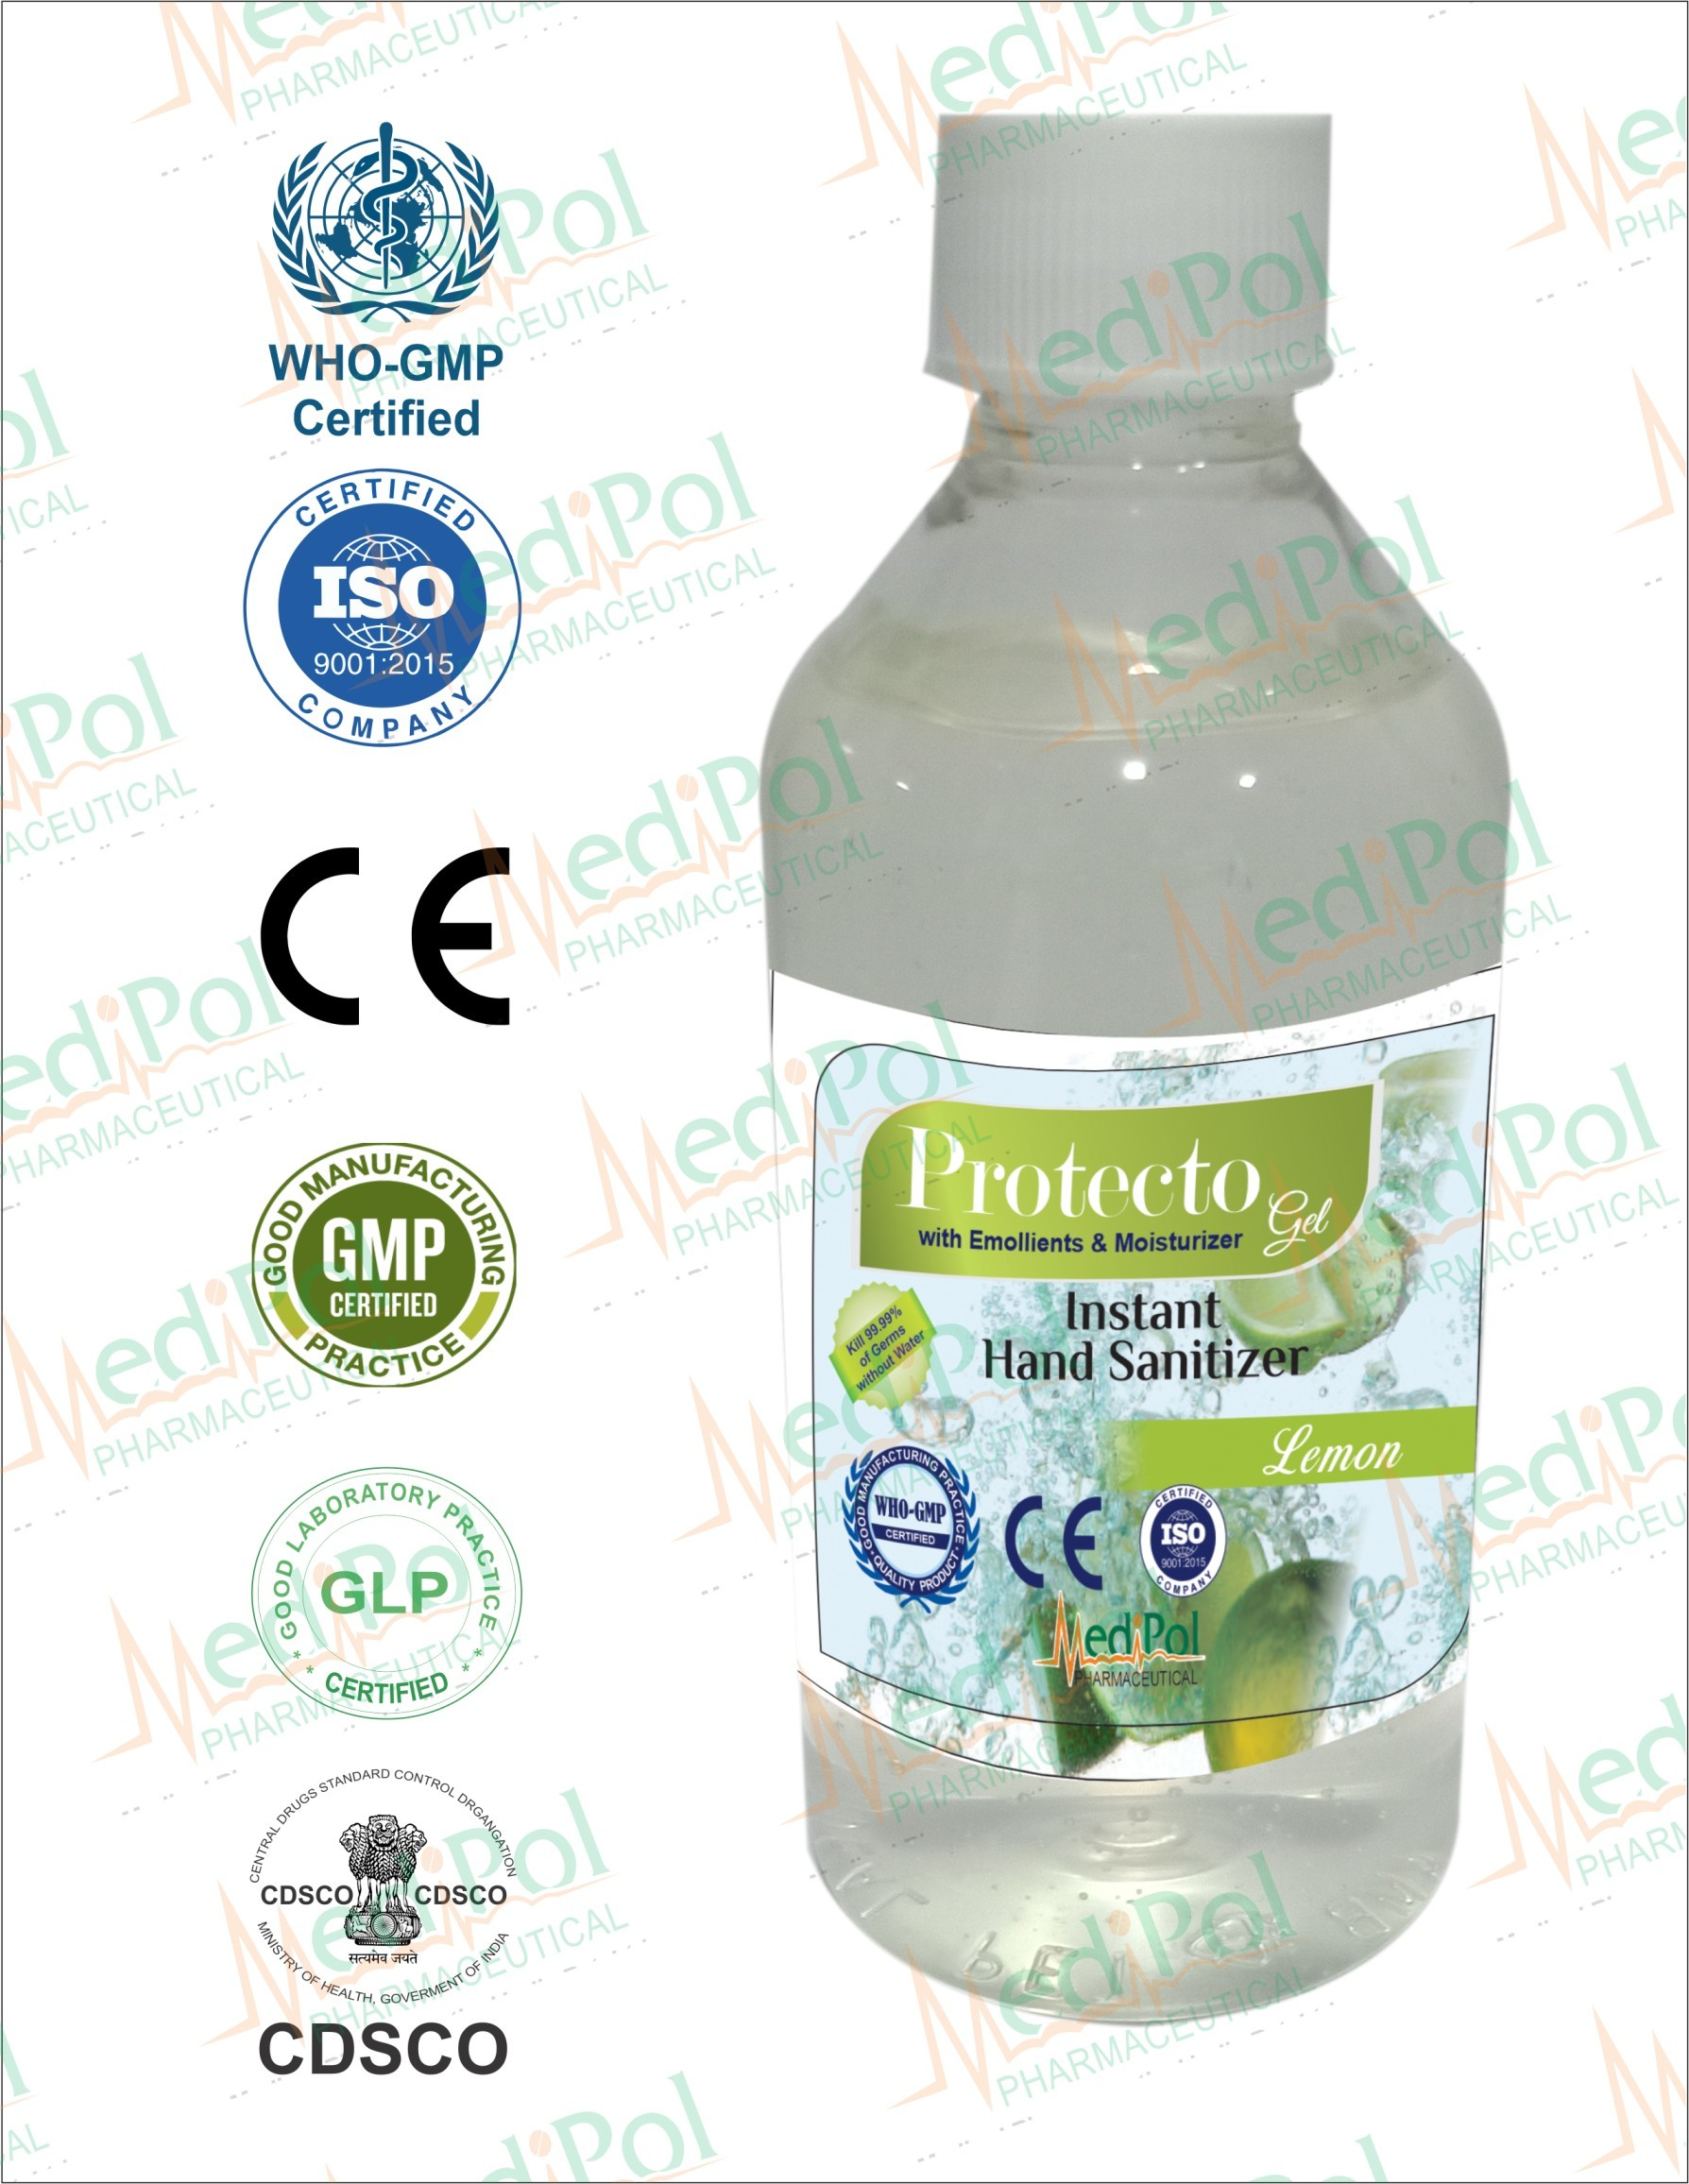 200 ML Protecto Gel Instant Hand Sanitizer